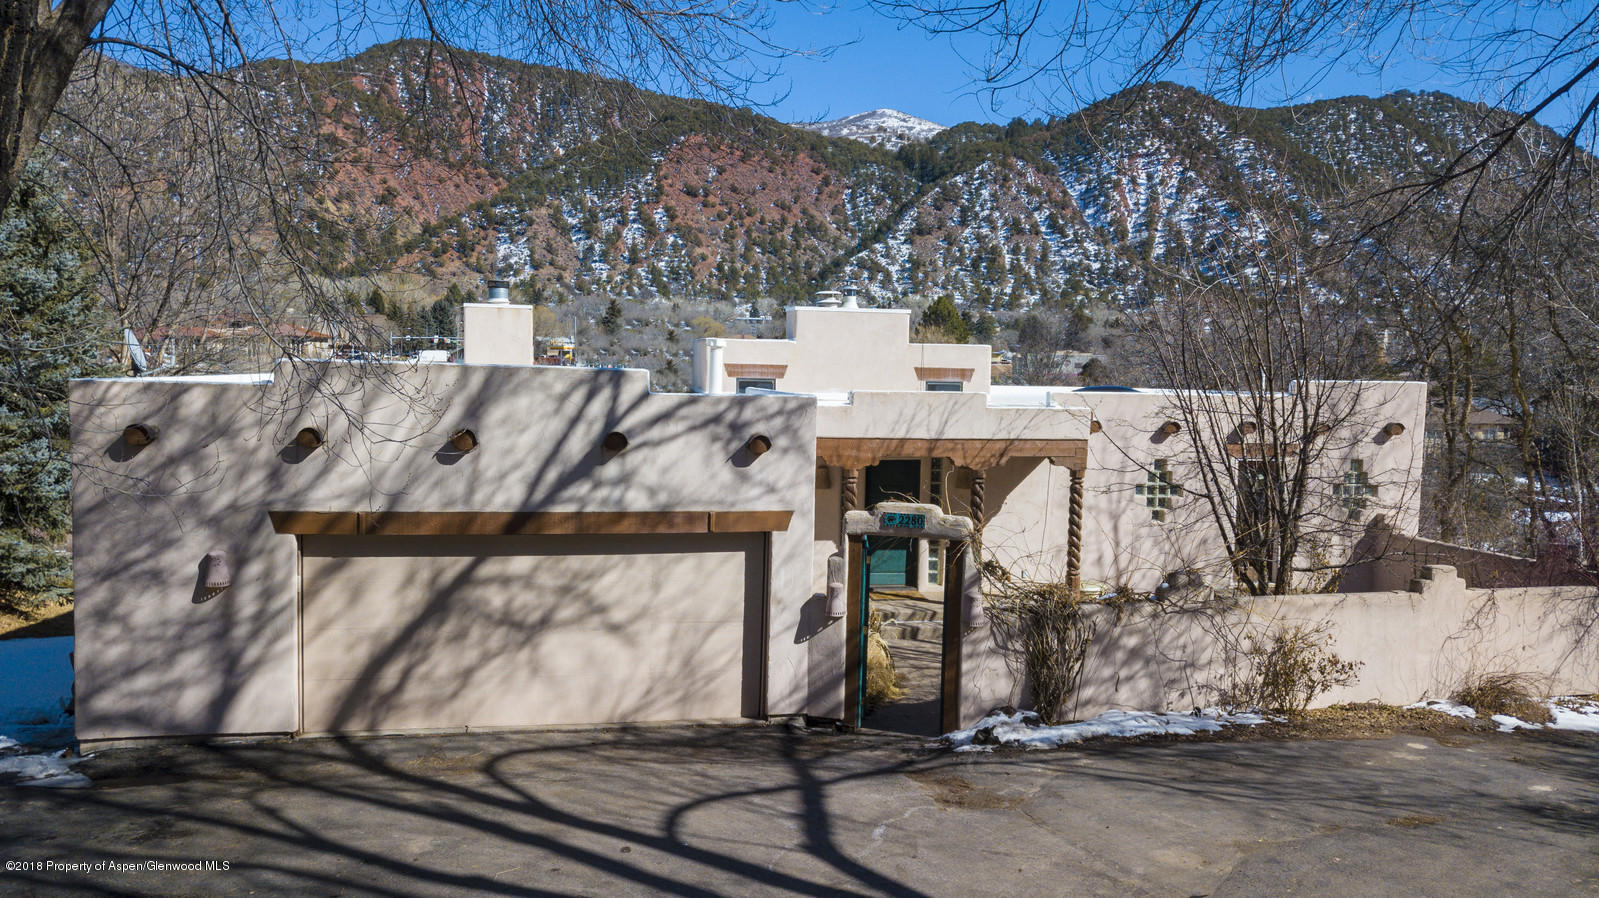 2280 Midland Avenue Glenwood Springs Photo 1